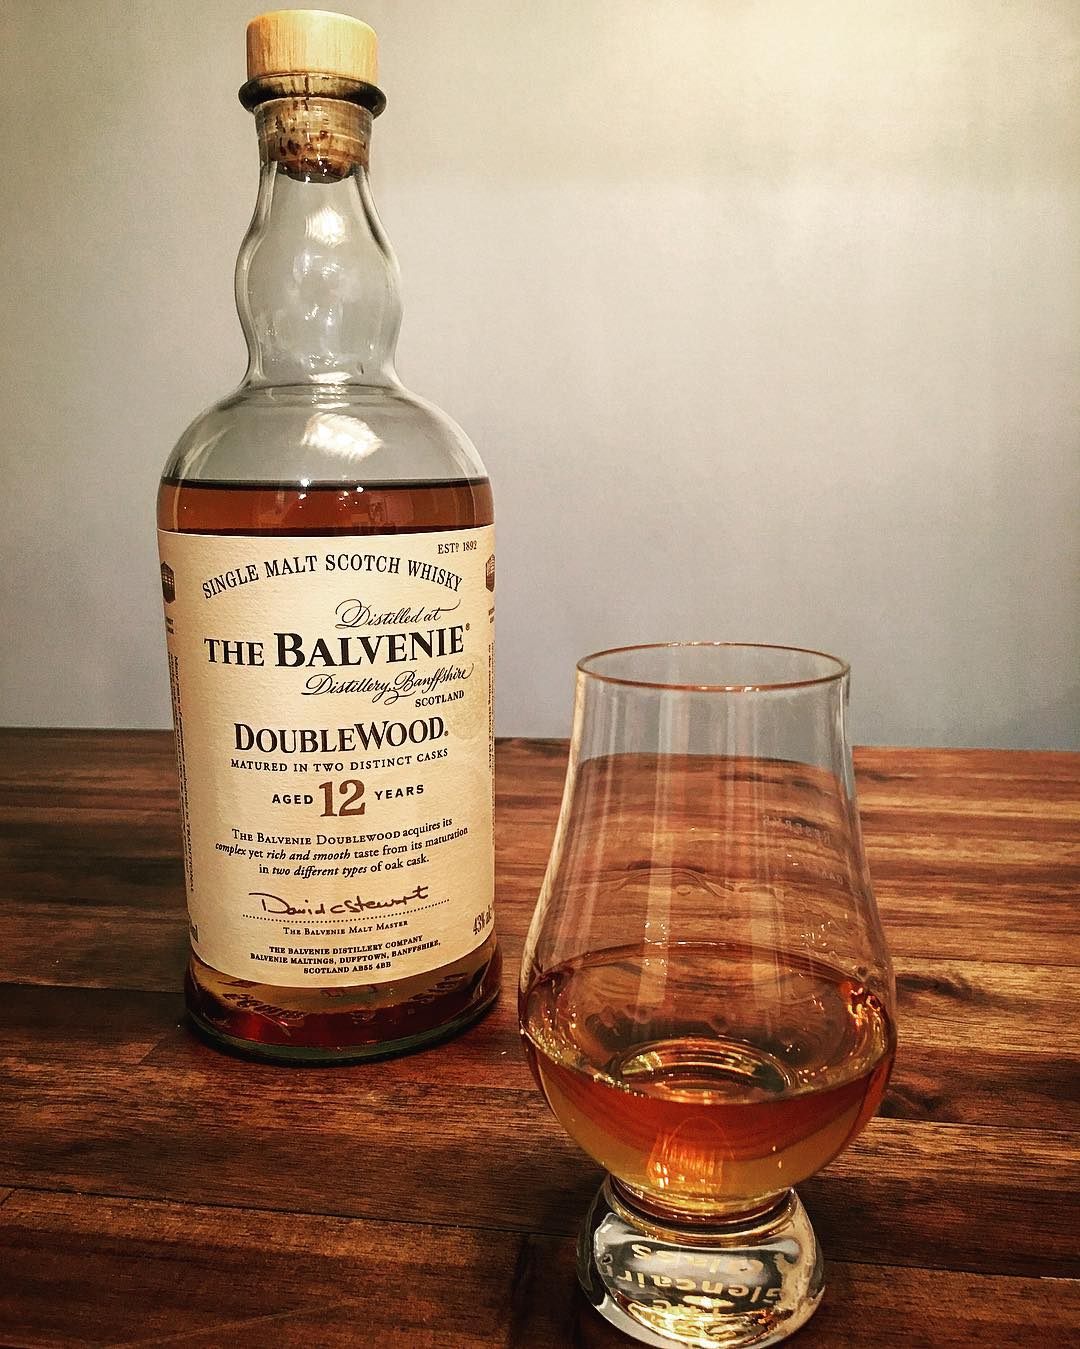 #worldwhiskyday has come and gone. At the encouragement from @scotch_trooper (unbeknownst to him), I went out and got #balvenie Double Wood. Aged 12 years first in #bourbon barrels and then #sherry barrels, this was a wonderful, easy drinking #scotch. A true treat to enjoy on World Whiskey Day! Thanks to @hopsandbarleysav for sharing a dram! #dram #whiskey #bowtiebarbecueco #scotch #balvenie12 #doublewood #bourbonbarrel #sherrybarrel #whiskeybar #inthegarage #visitsavannah #whattodoinsavannah #singlemaltscotch #sınglemaltwhiskey #distillerybanffshire @balvenieus